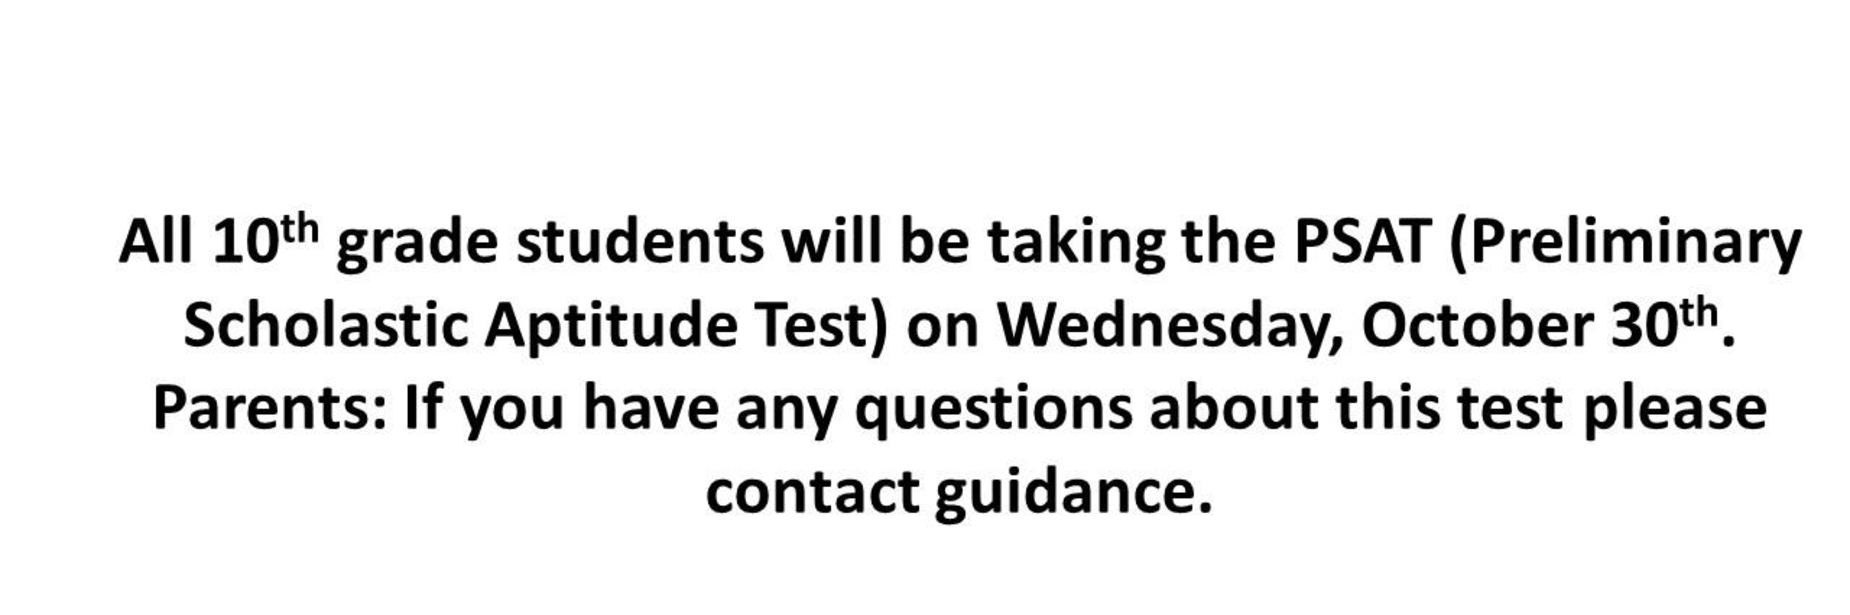 PSAT test announcement